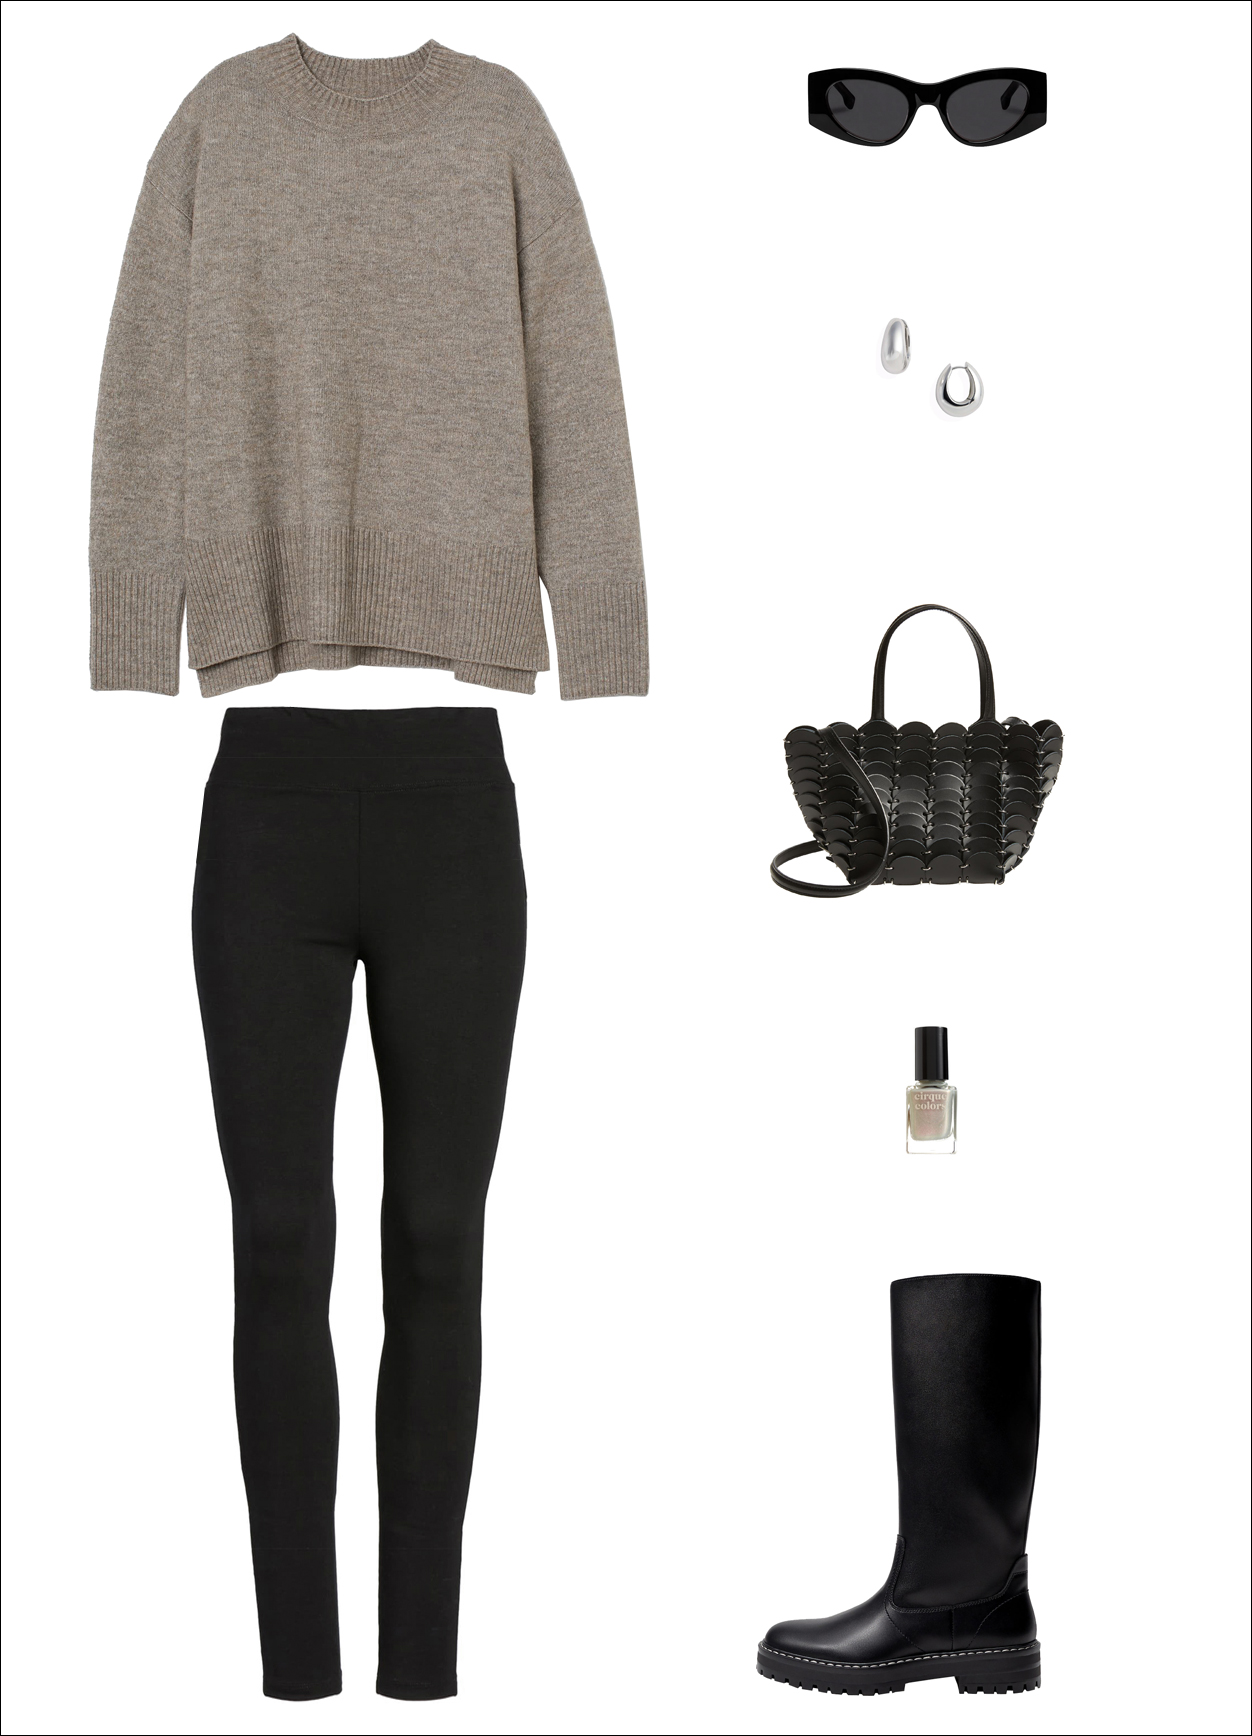 Stylish Yet Cozy Fall and Winter Everyday Outfit Idea — Oversized nueutral sweater, black cat-eye sunglasses, silver chunky hoop earrings, Paco Rabanne mini bag, black leggings, and knee-high lug-sole boots